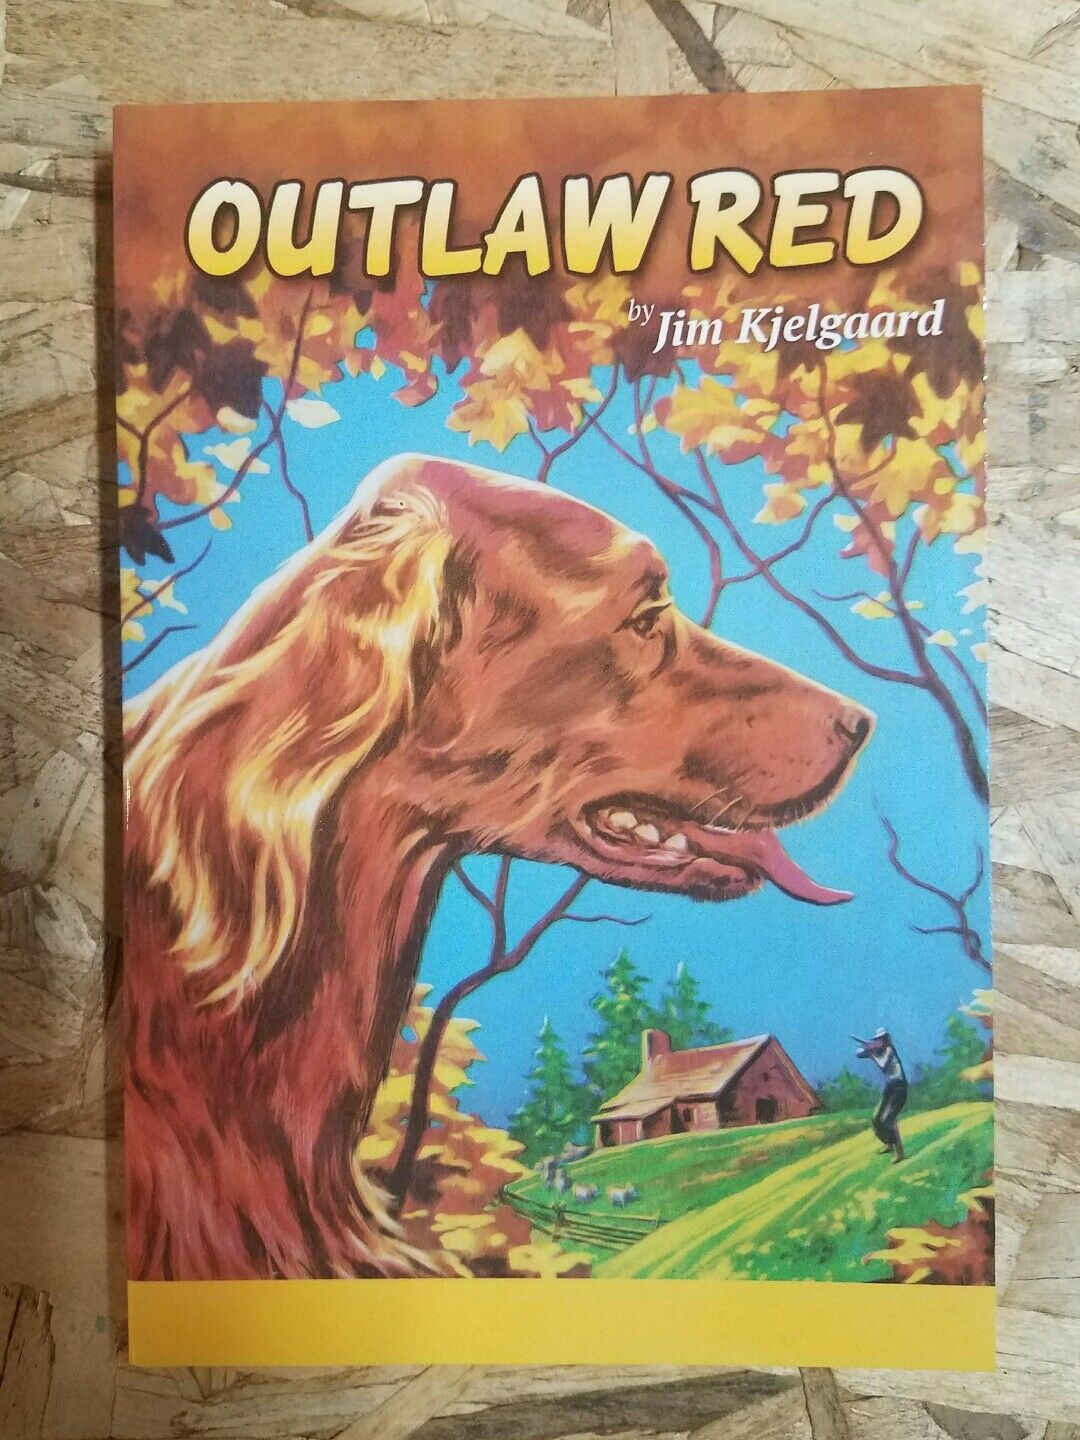 a summary of the novel big red by jim kjelgaard Born in new york city, new york, jim kjelgaard is the author of more than forty novels, the most famous of which is 1945's big redit sold 225,000 copies by 1956 and was made into a 1962 walt disney film of the same name.